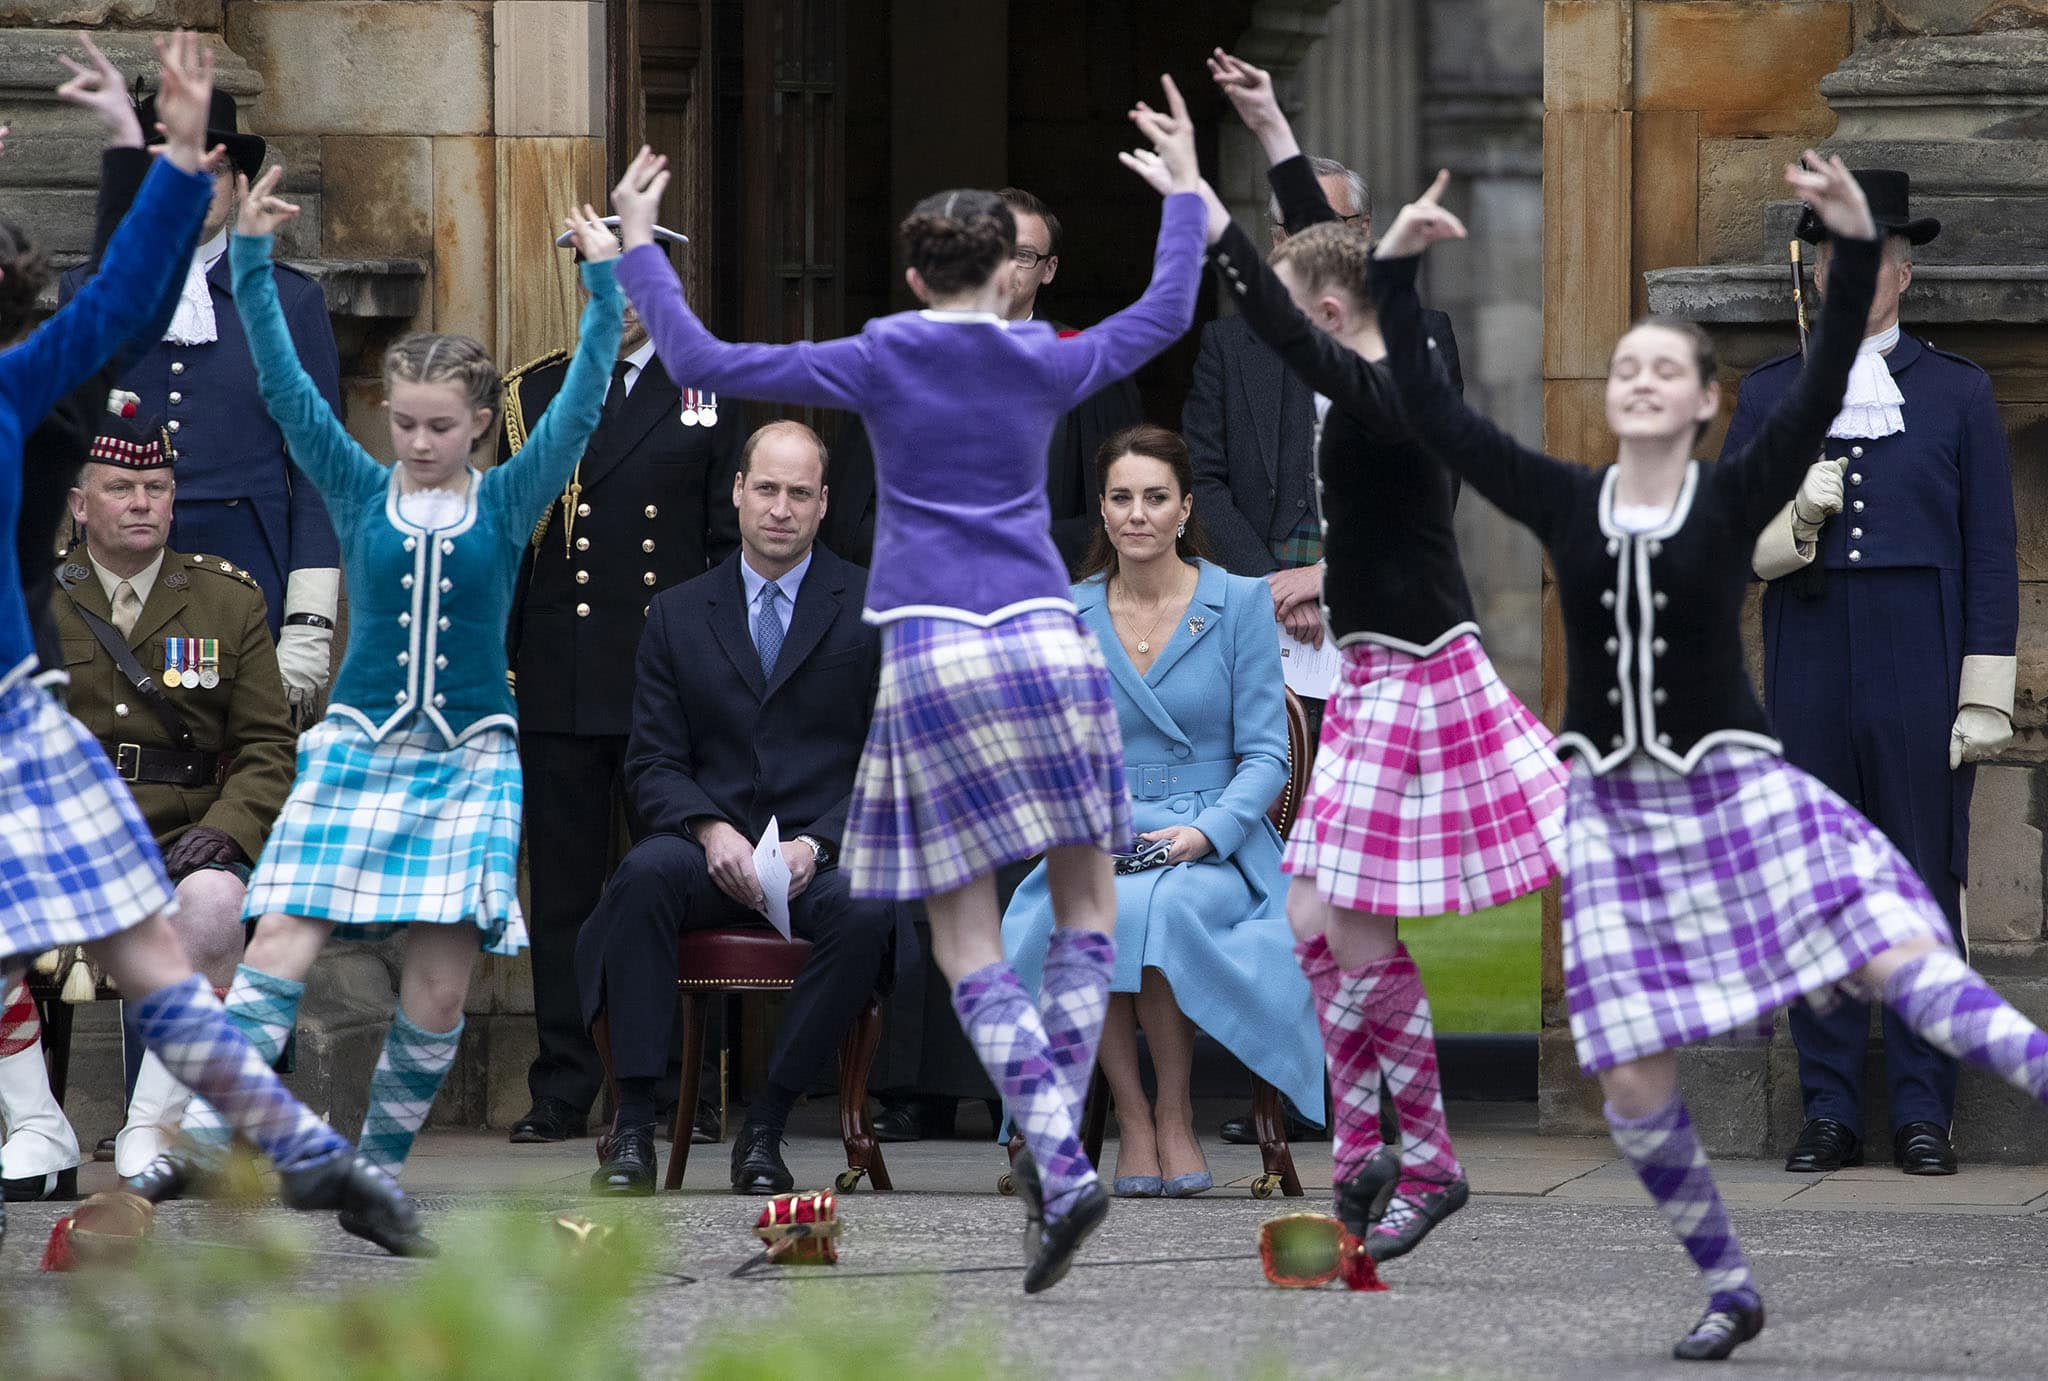 Prince William and Kate Middleton attend Beating Retreat Ceremony at the Palace of Holyroodhouse on May 26, 2021